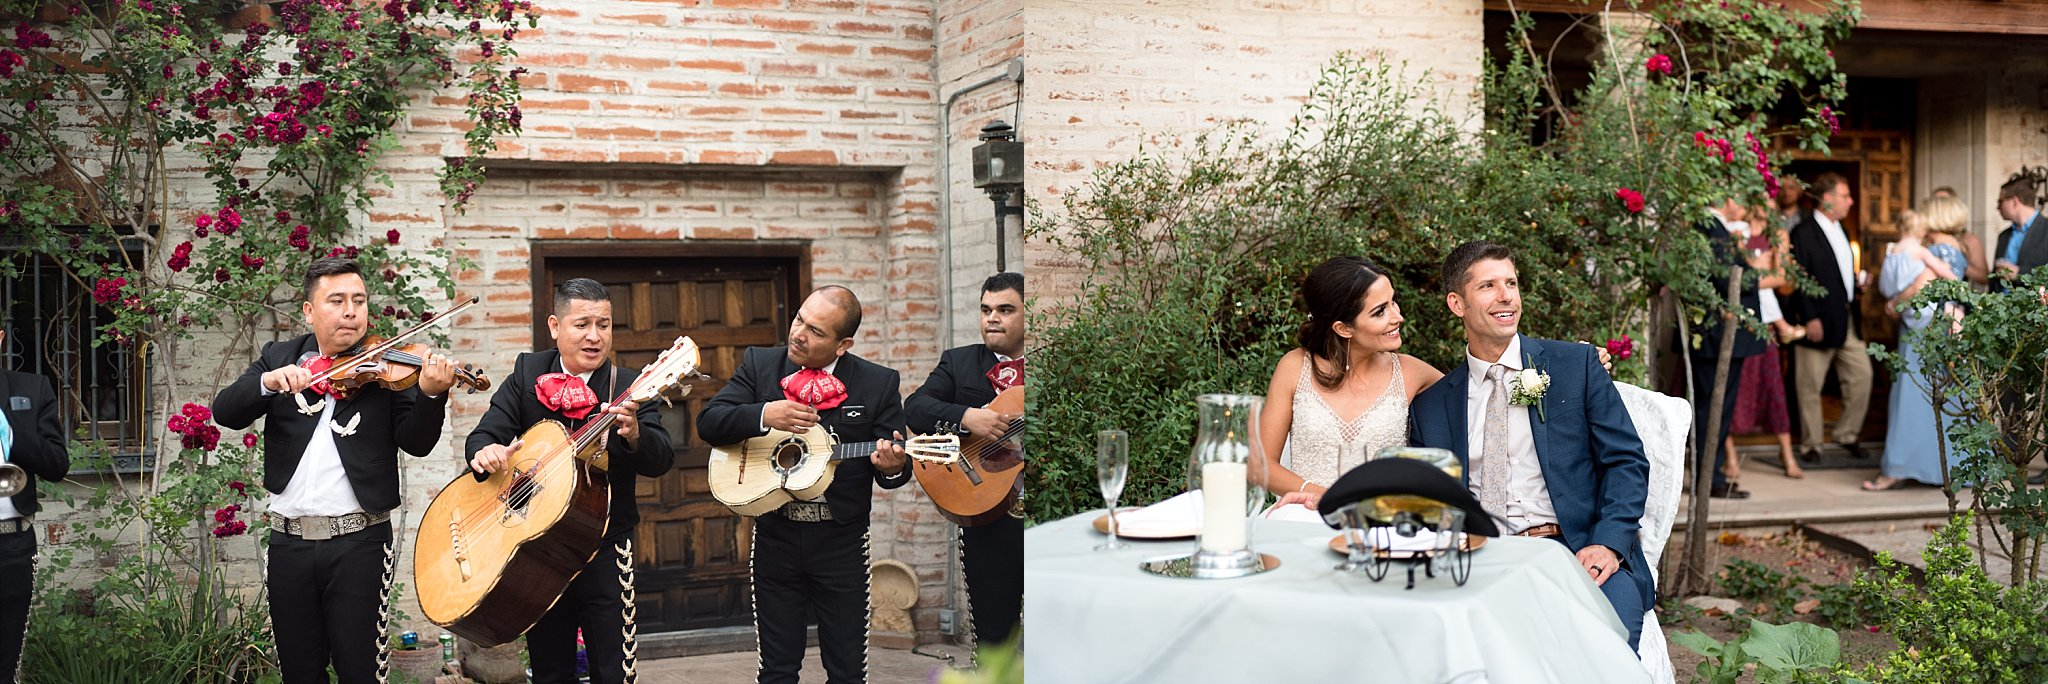 Mariachi bands always bring a lively spirit to any celebration!